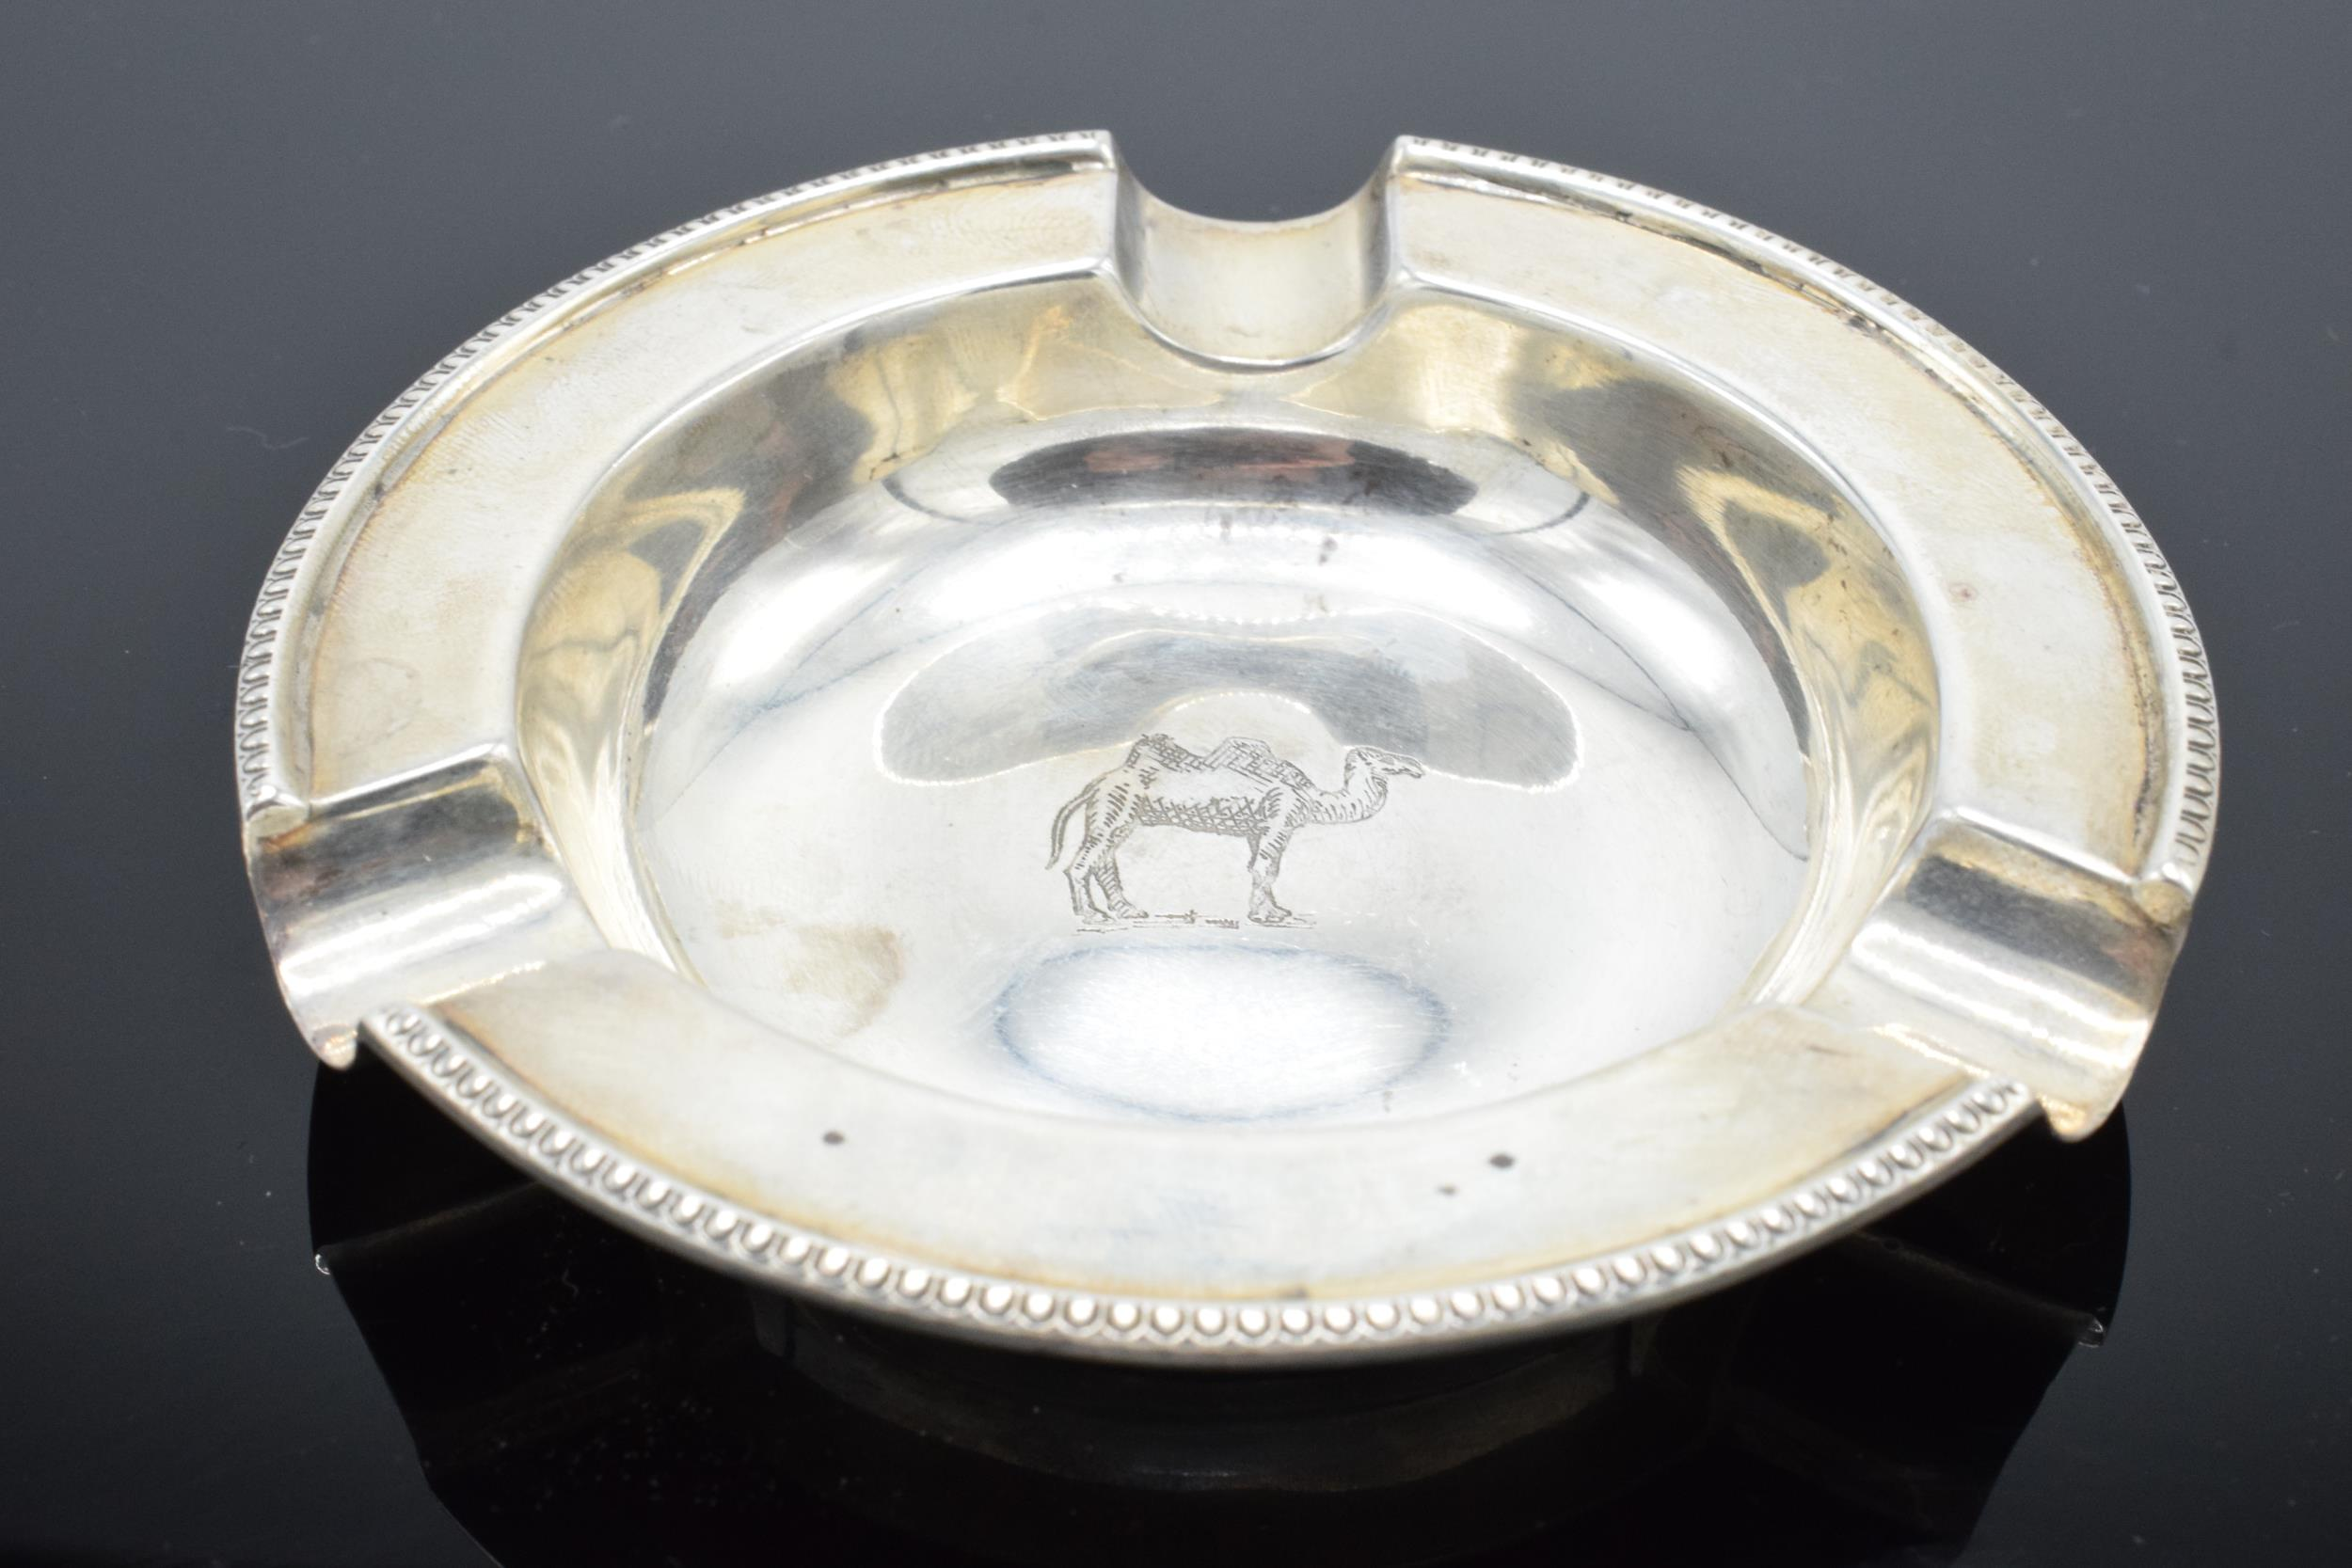 A silver ashtray depicting a camel. Sheffield 1961 by Walker and Hall. 51.8 grams.